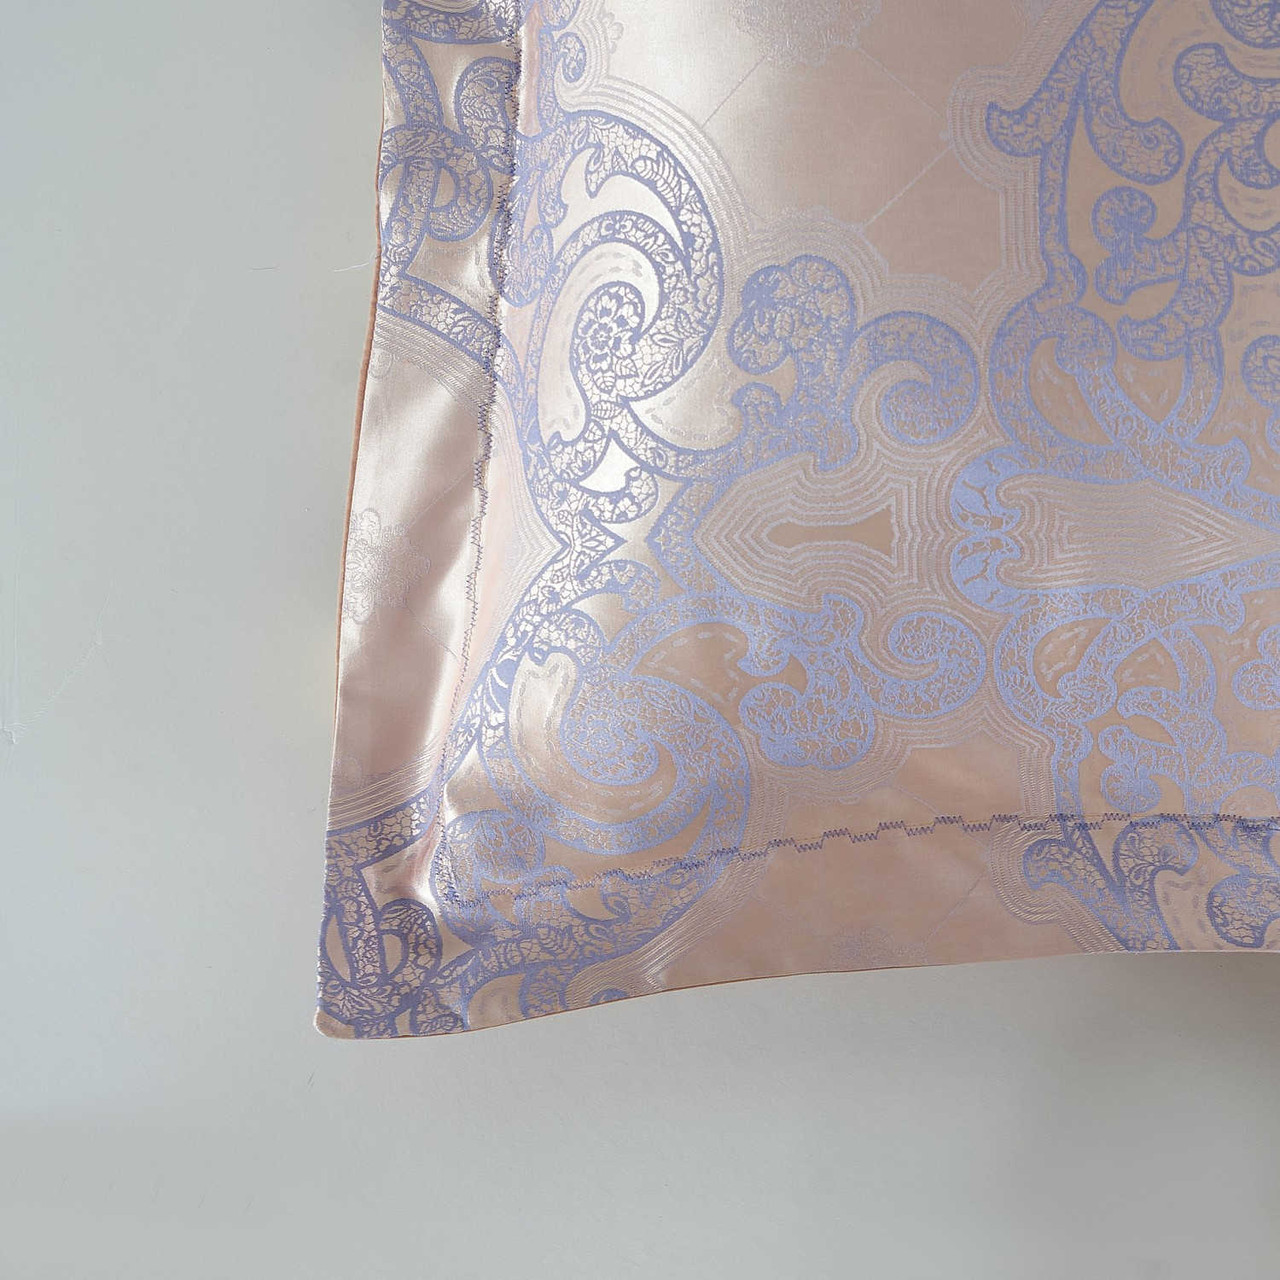 Jacquard Pillowcases DM805Q Dolce-Mela Bedding Wholesale-Dropship